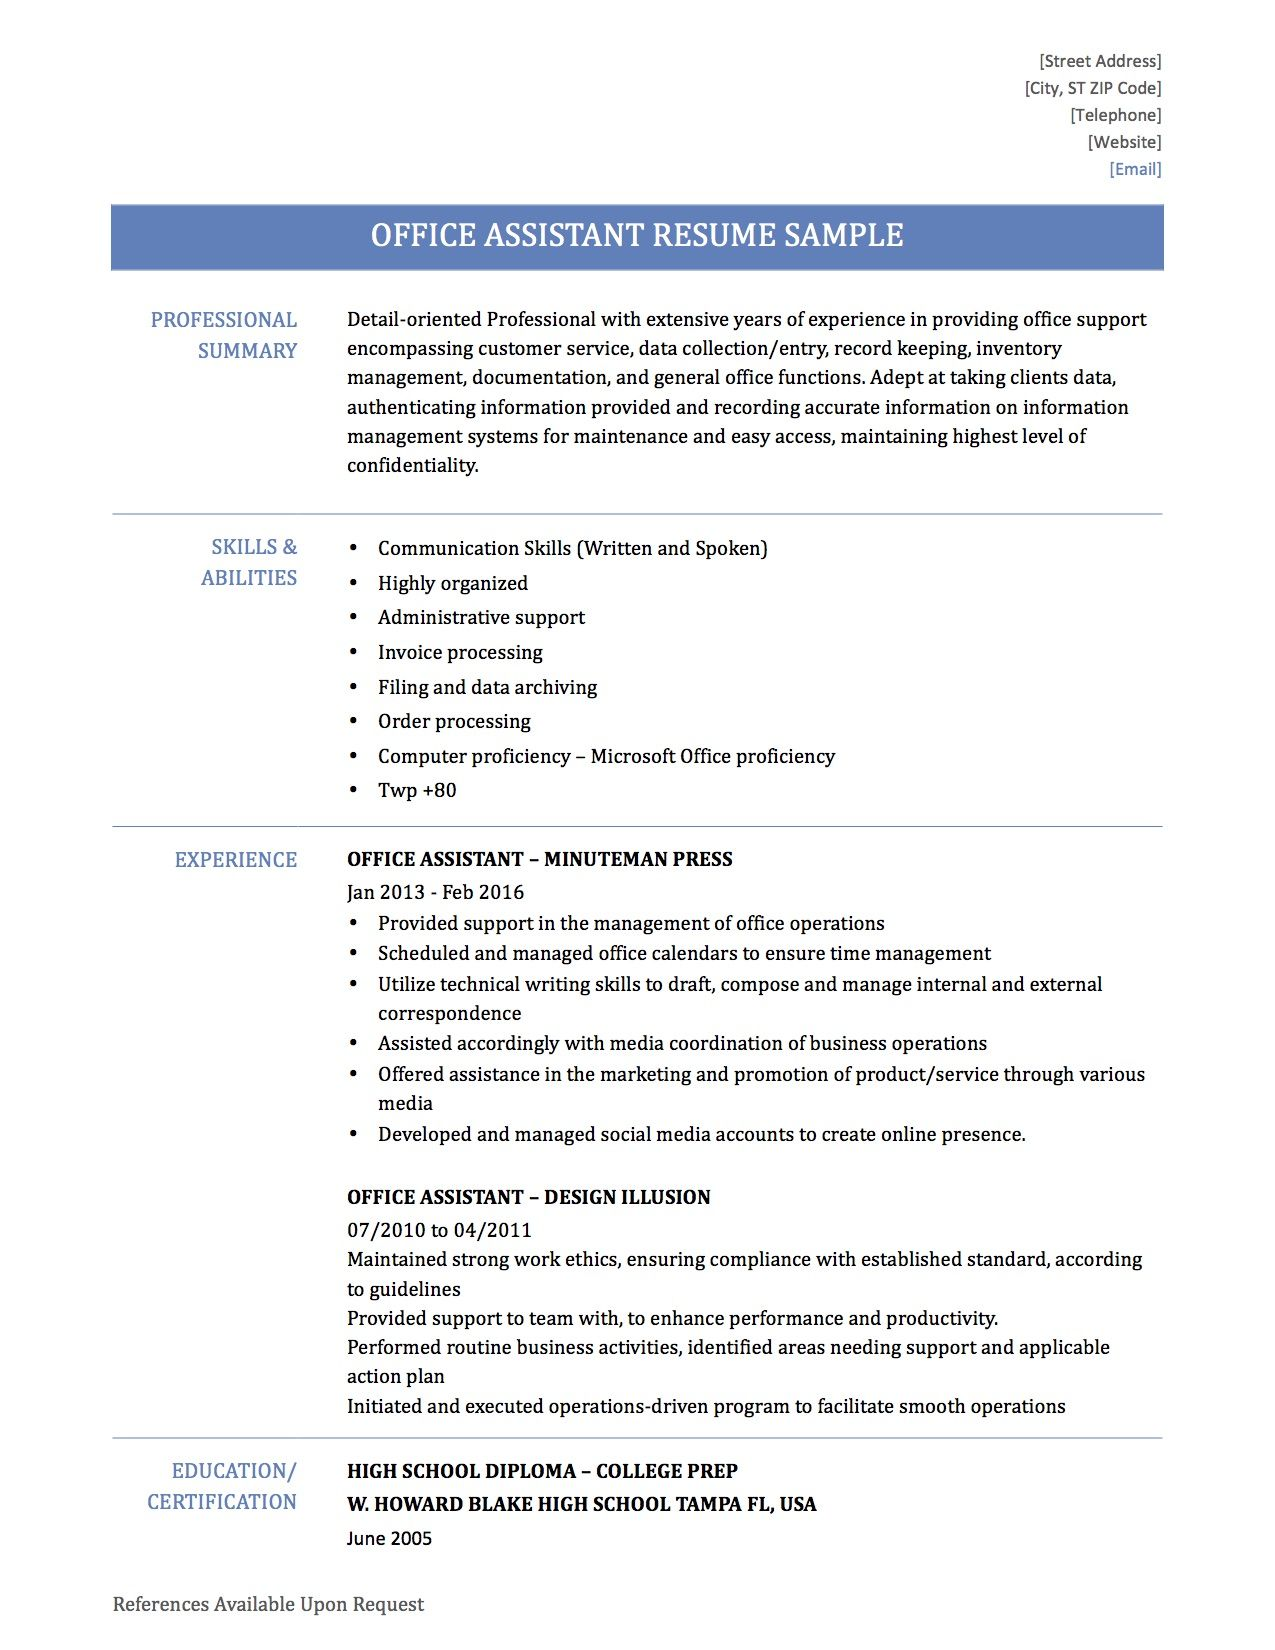 Welder Resume Entry Level Resume Templates Jobs Sample Examples Free Download